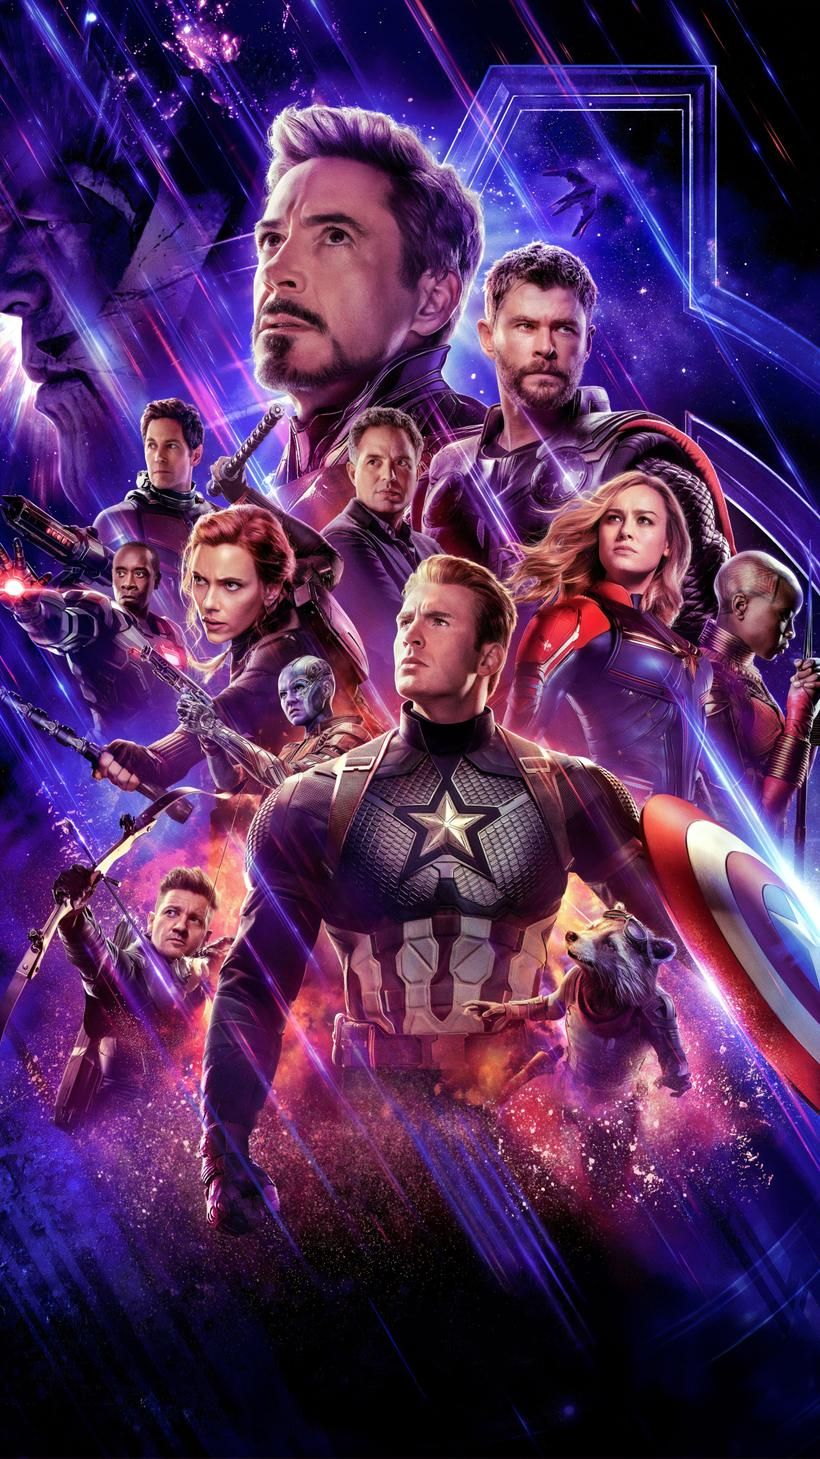 Avengers Endgame (2019) Phone Wallpaper Avengers